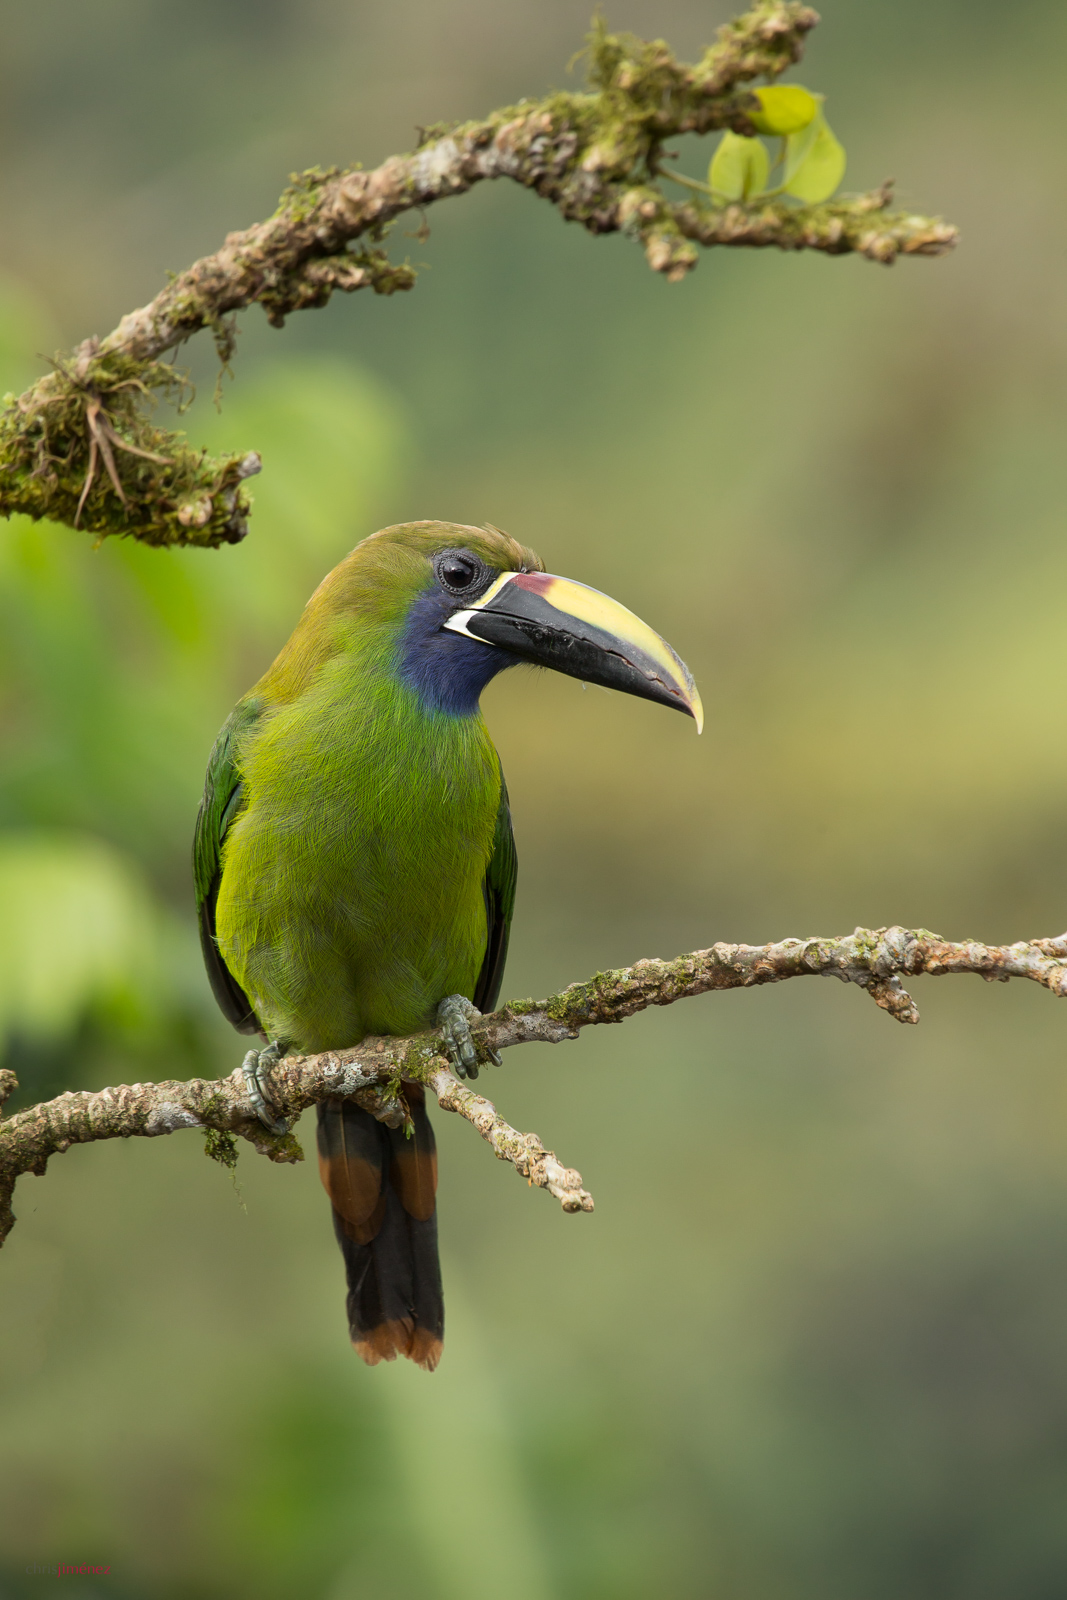 Emerald Toucanet (Aulacorhynchus prasinus) perched on a branch at the highlands of Costa Rica